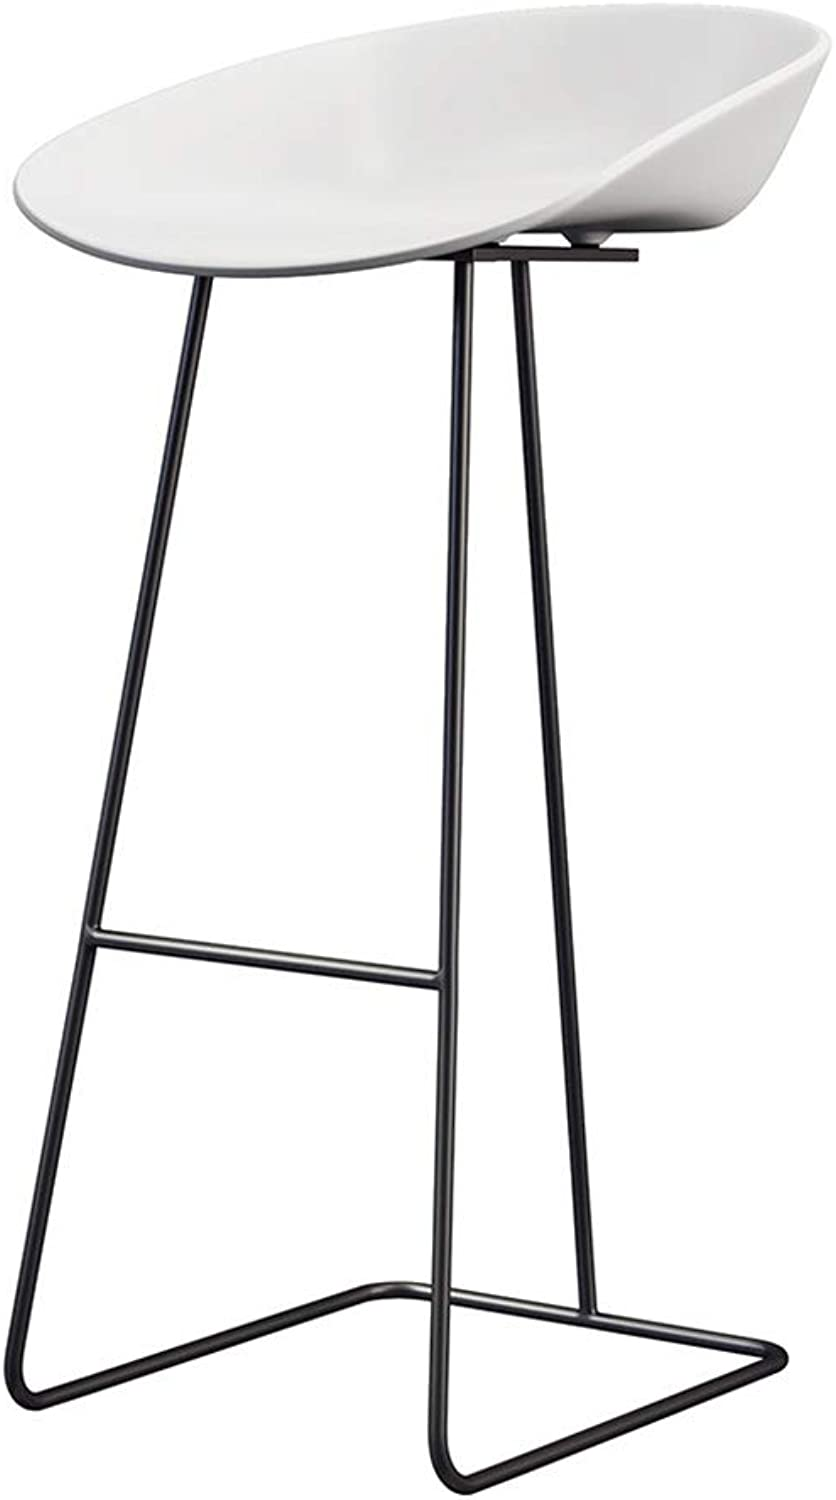 XLZ Simple Bar Stool, Wrought Iron Painting Process, Breakfast Stool, Kitchen Bar Stool,Breakfast Stool,Counter Chair (color   Black-White, Size   65CM)